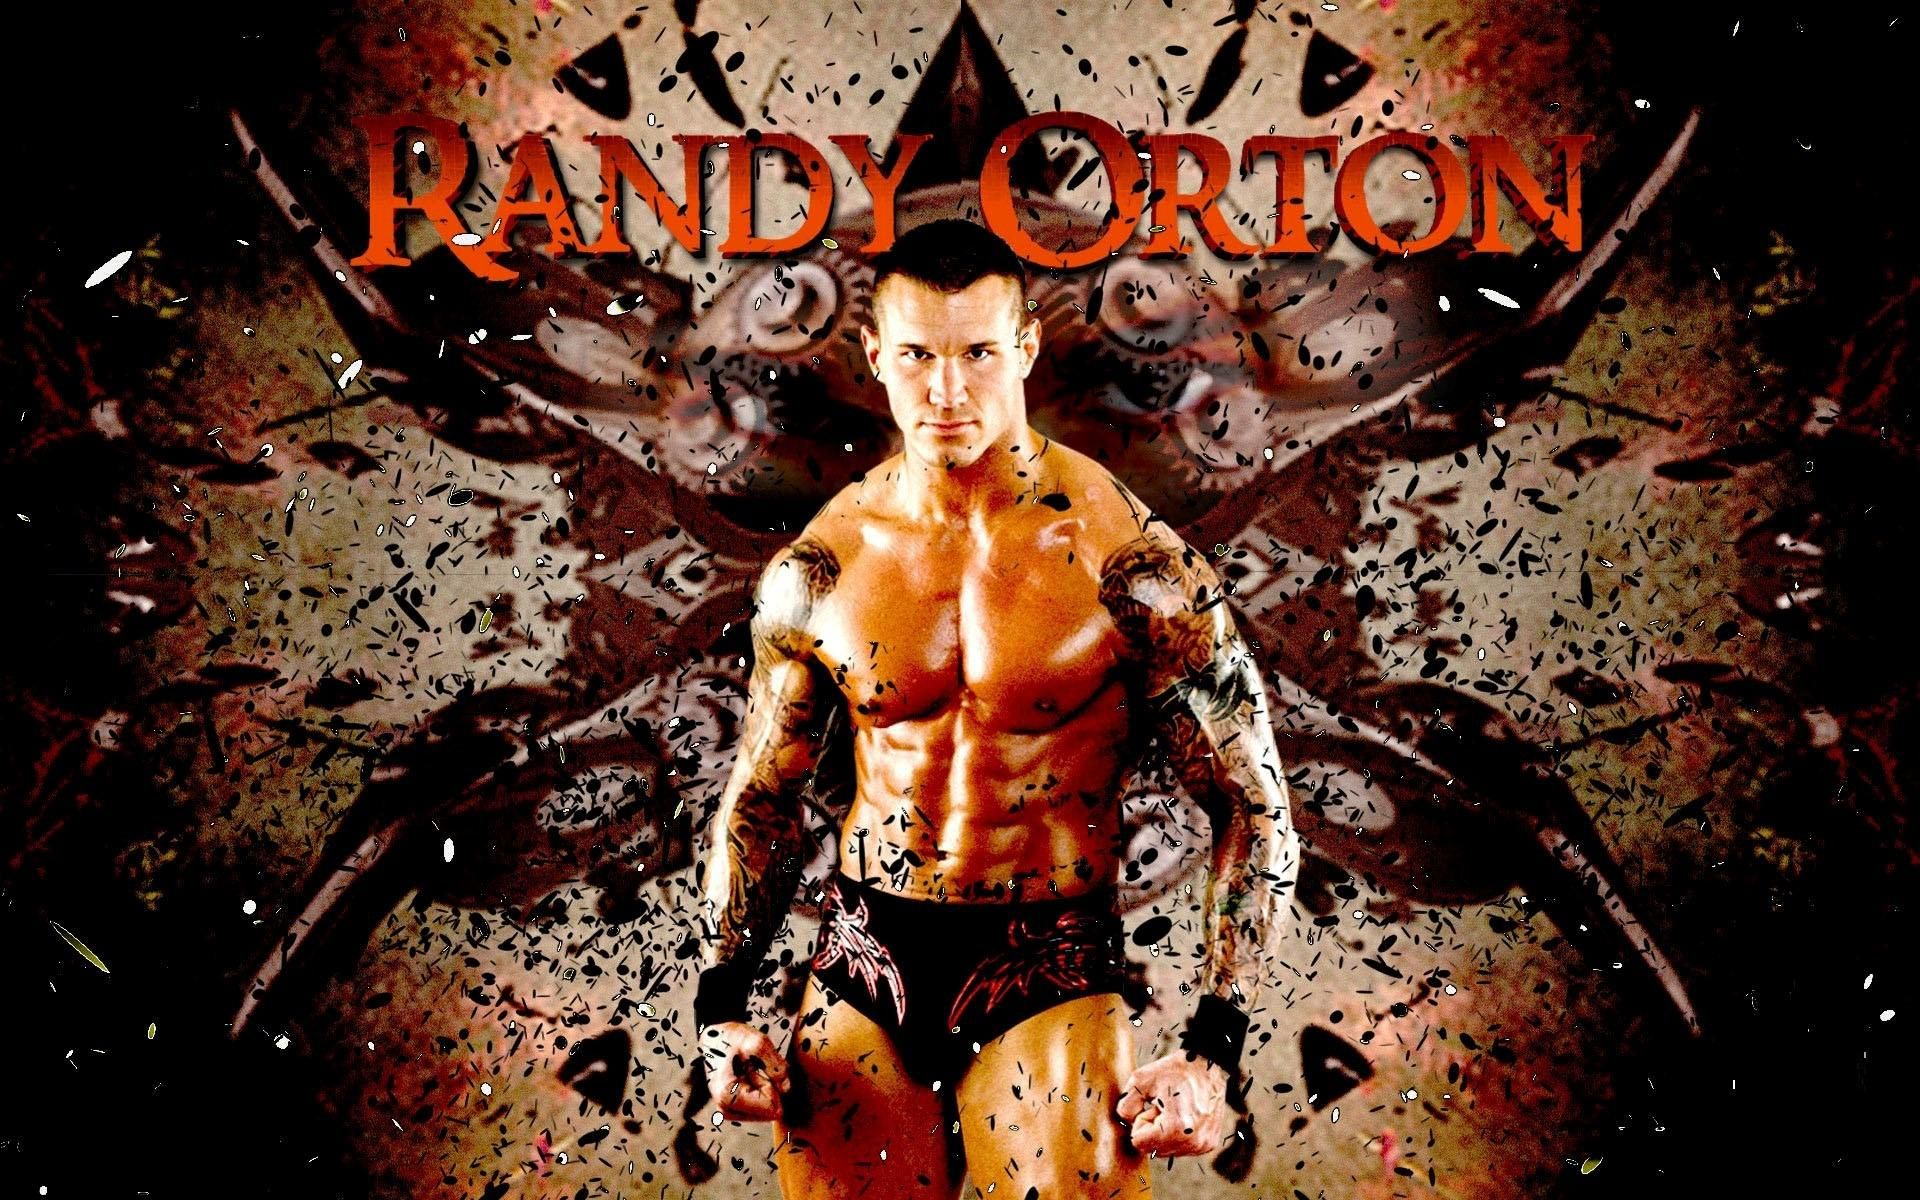 Wwe Randy Orton Rko Photos Image Gallery - HCPR